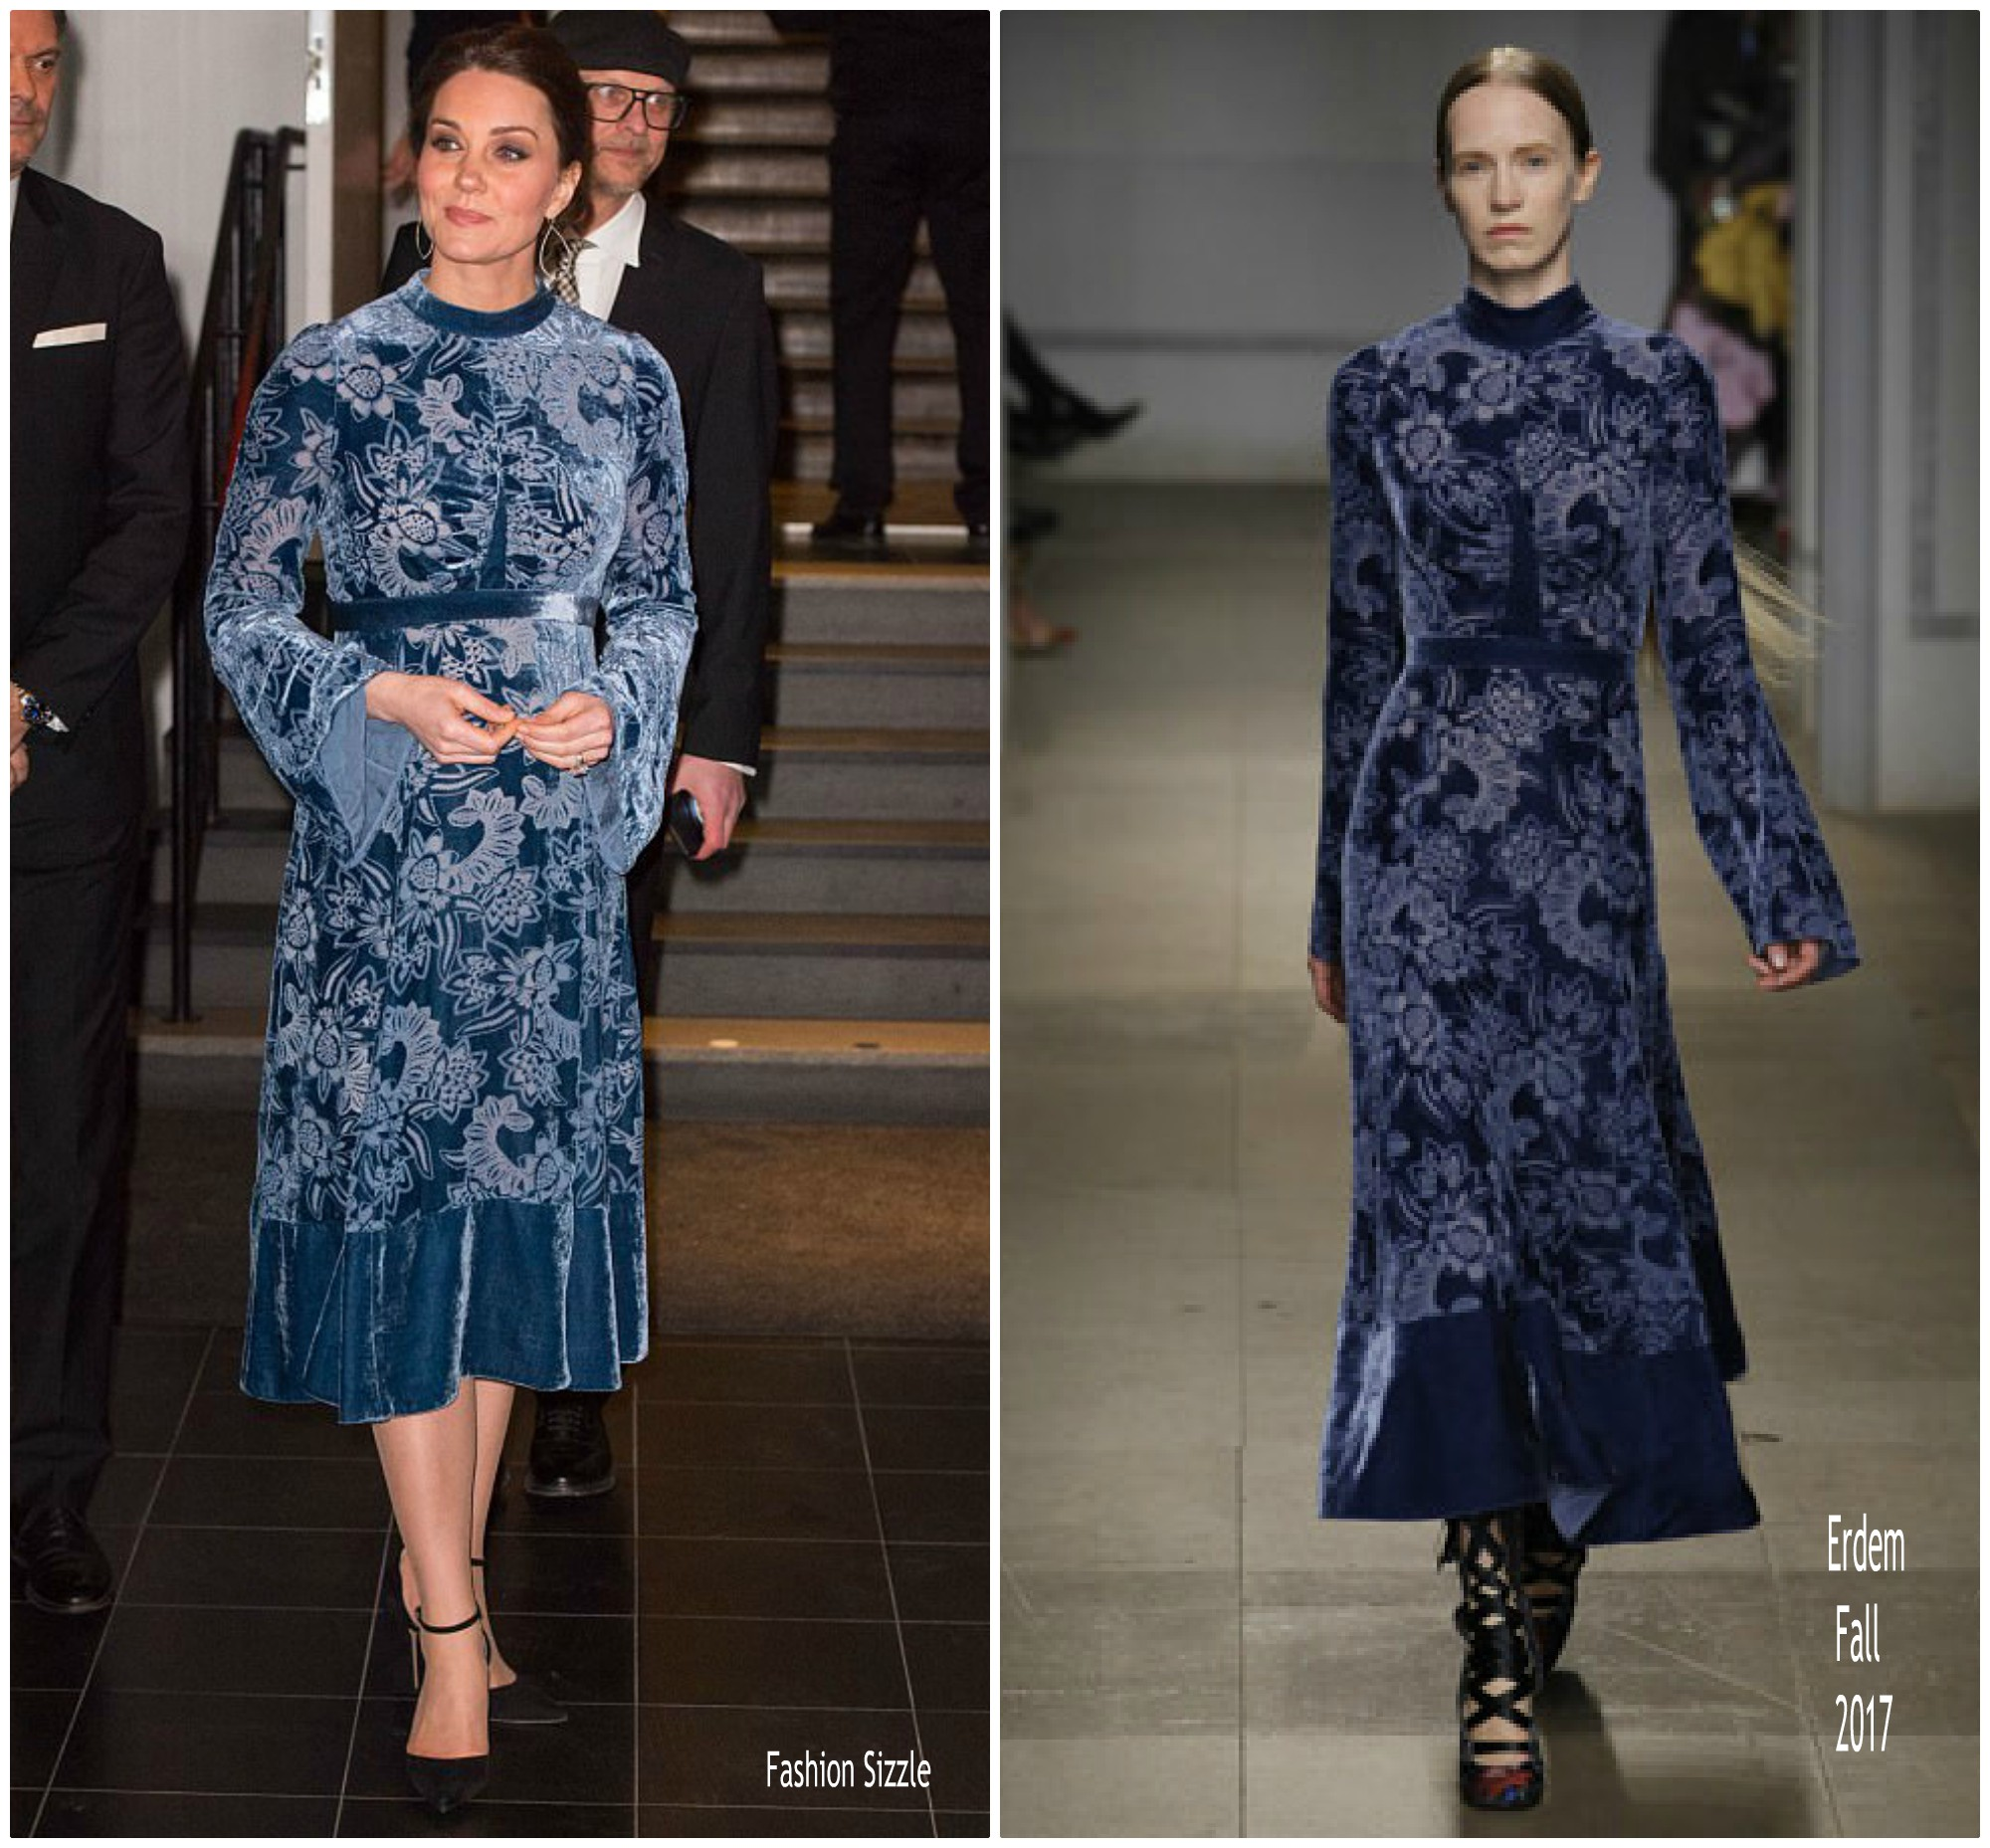 duchess-of-cambridge-in-erdem-visit-to-sweden-day-2